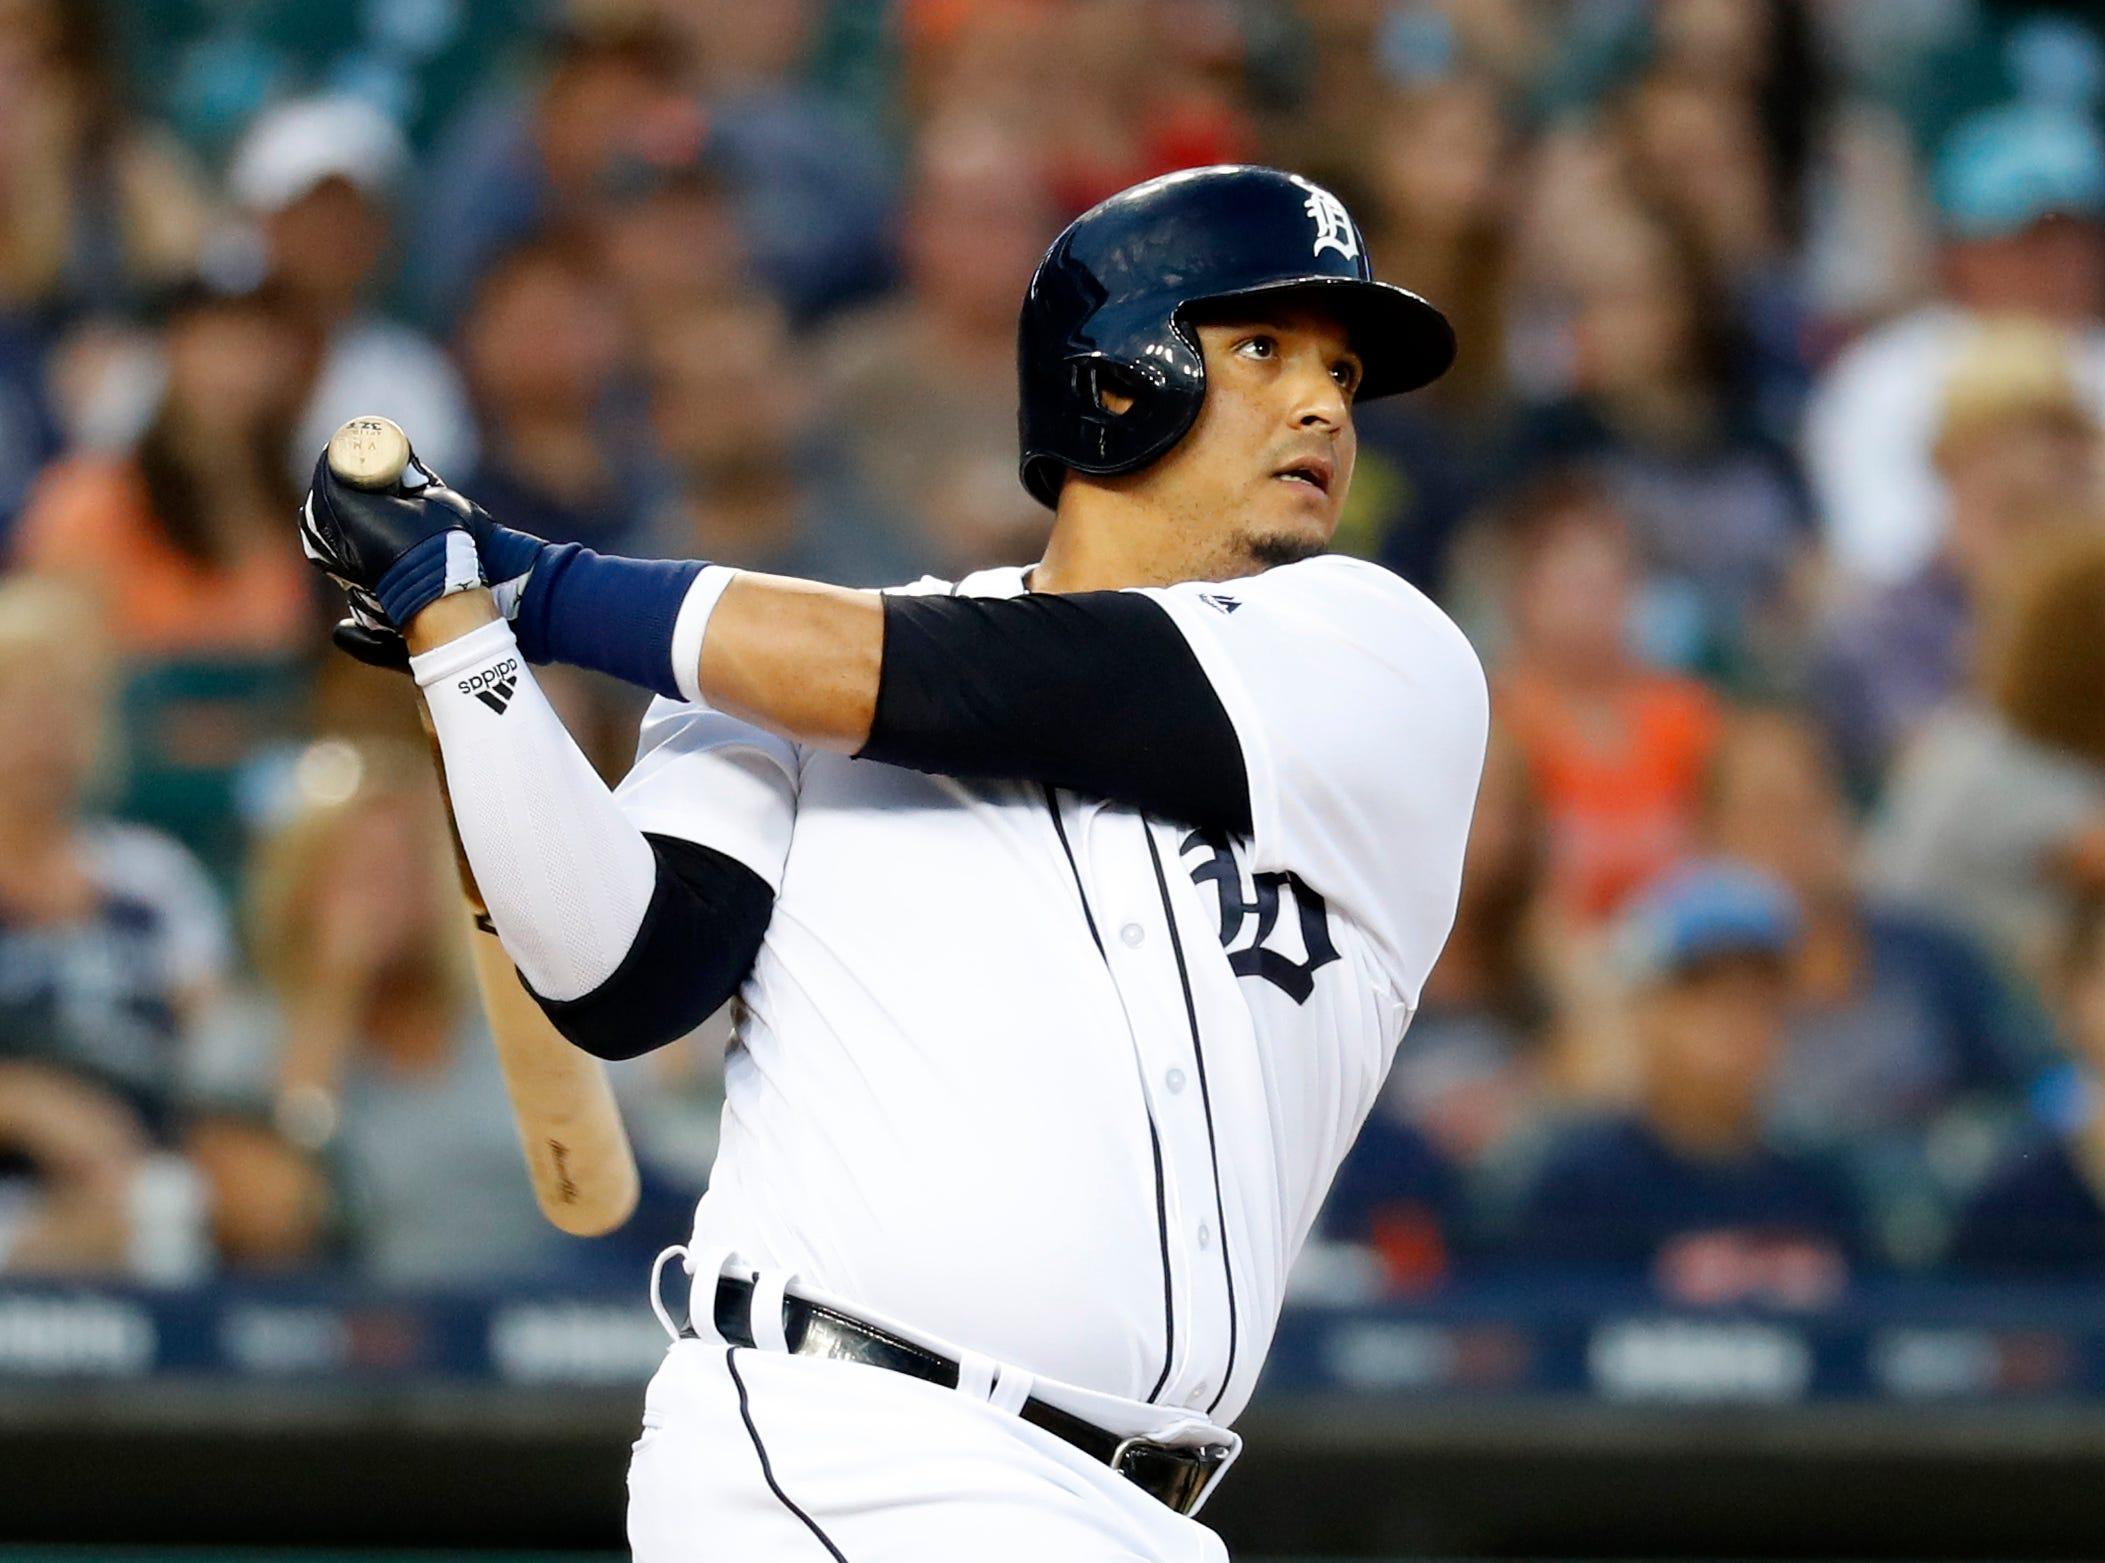 Detroit Tigers' Victor Martinez doubles in the fourth inning.